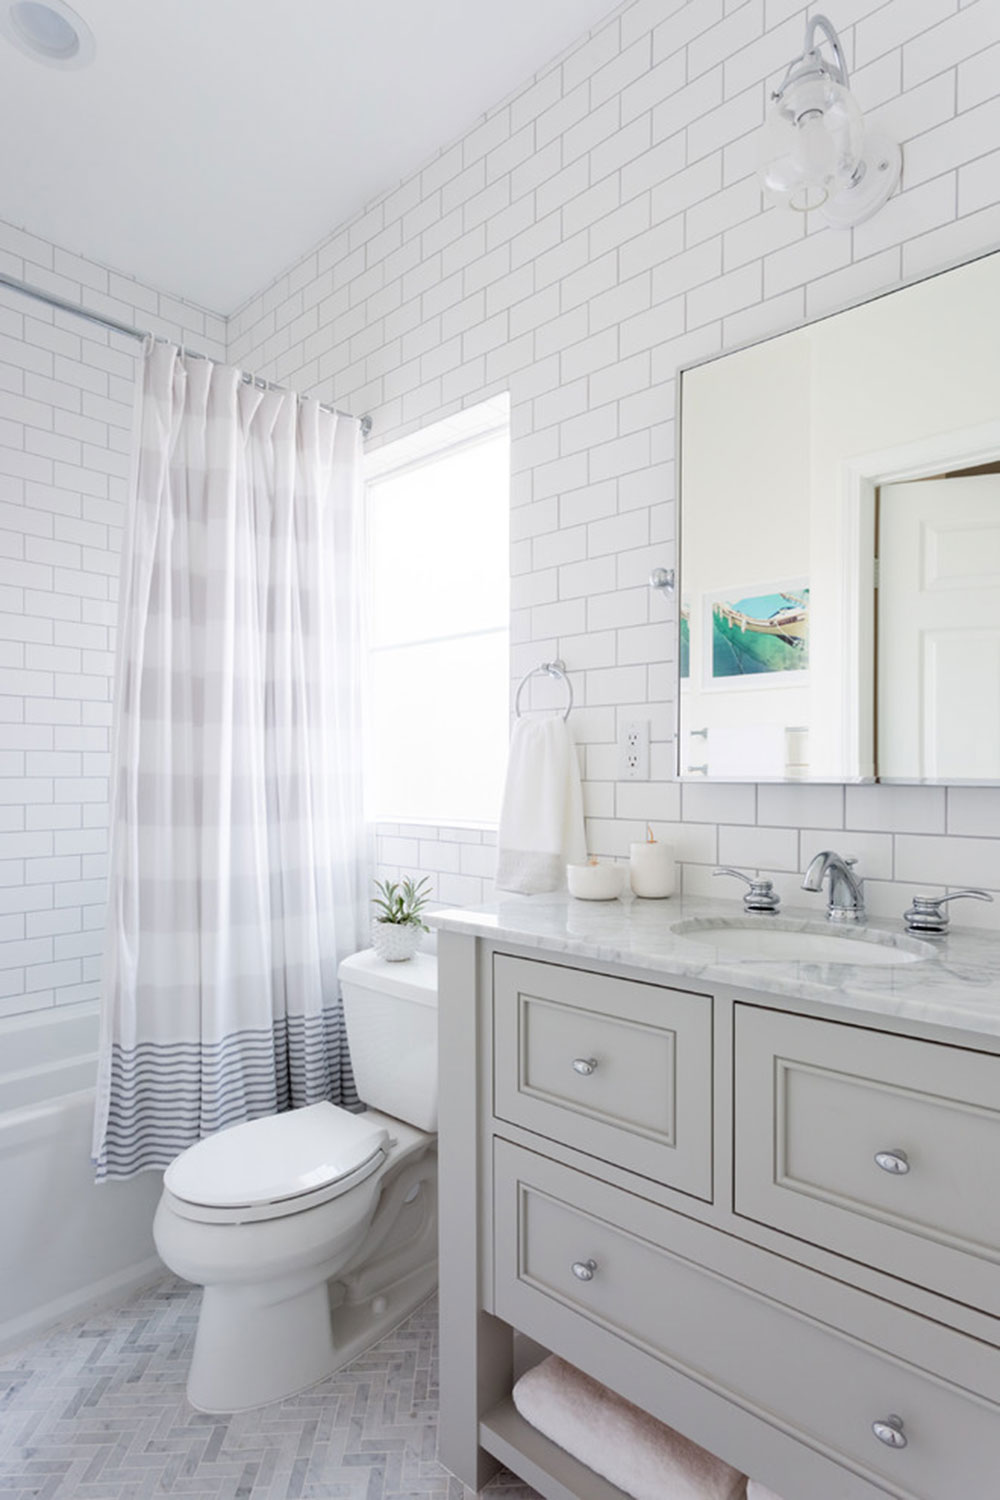 Small bathroom remodel:  tips to do it properly